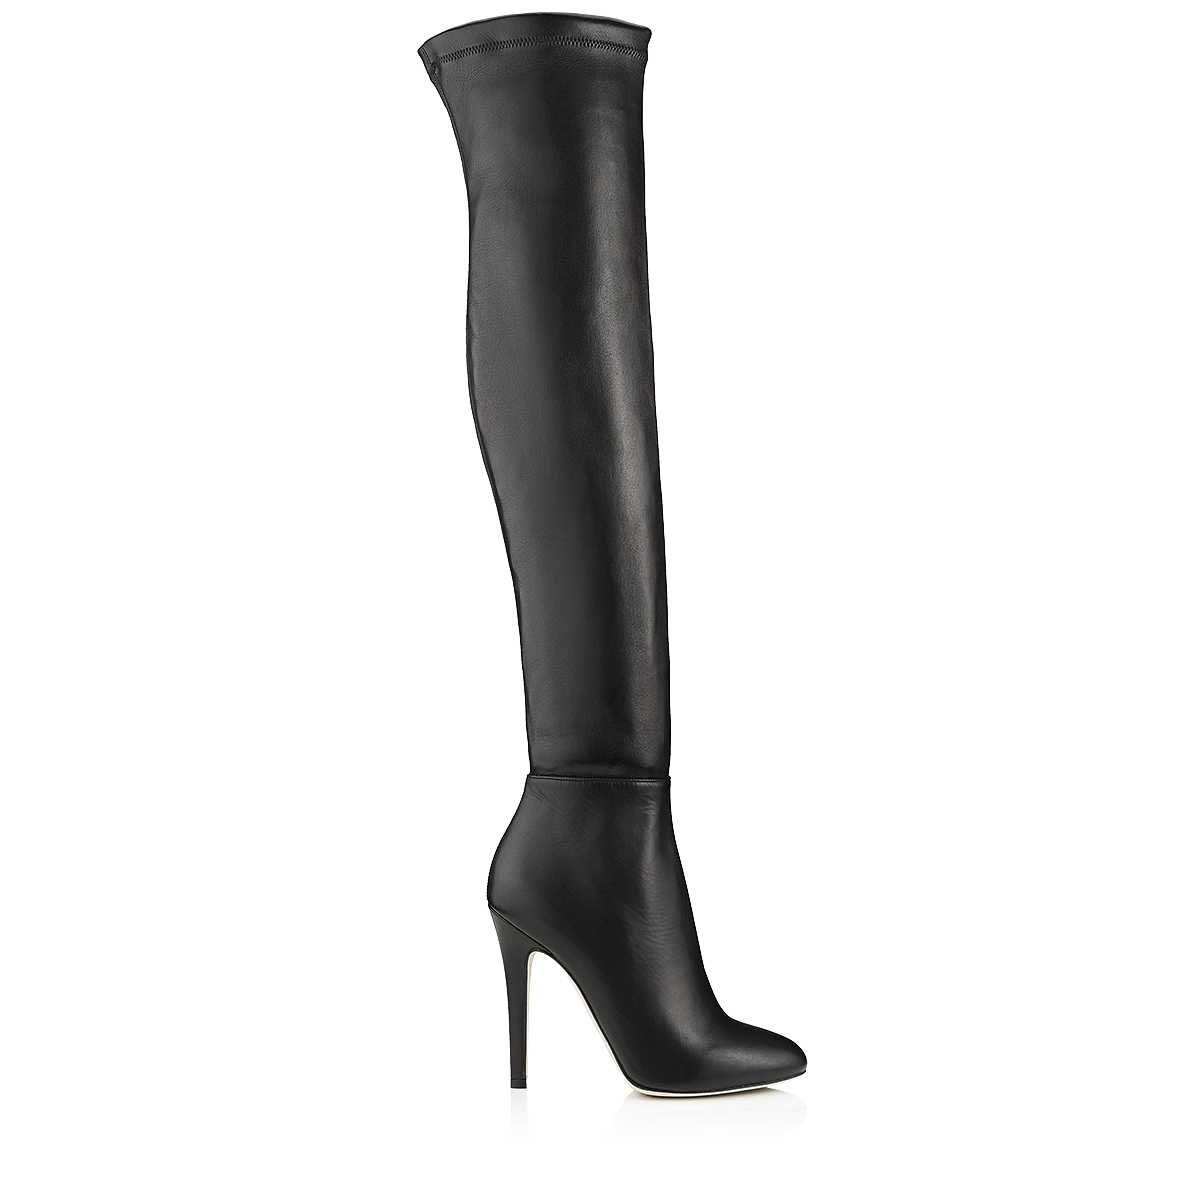 TURNER Black Calf and Stretch Nappa Over the Knee Boots